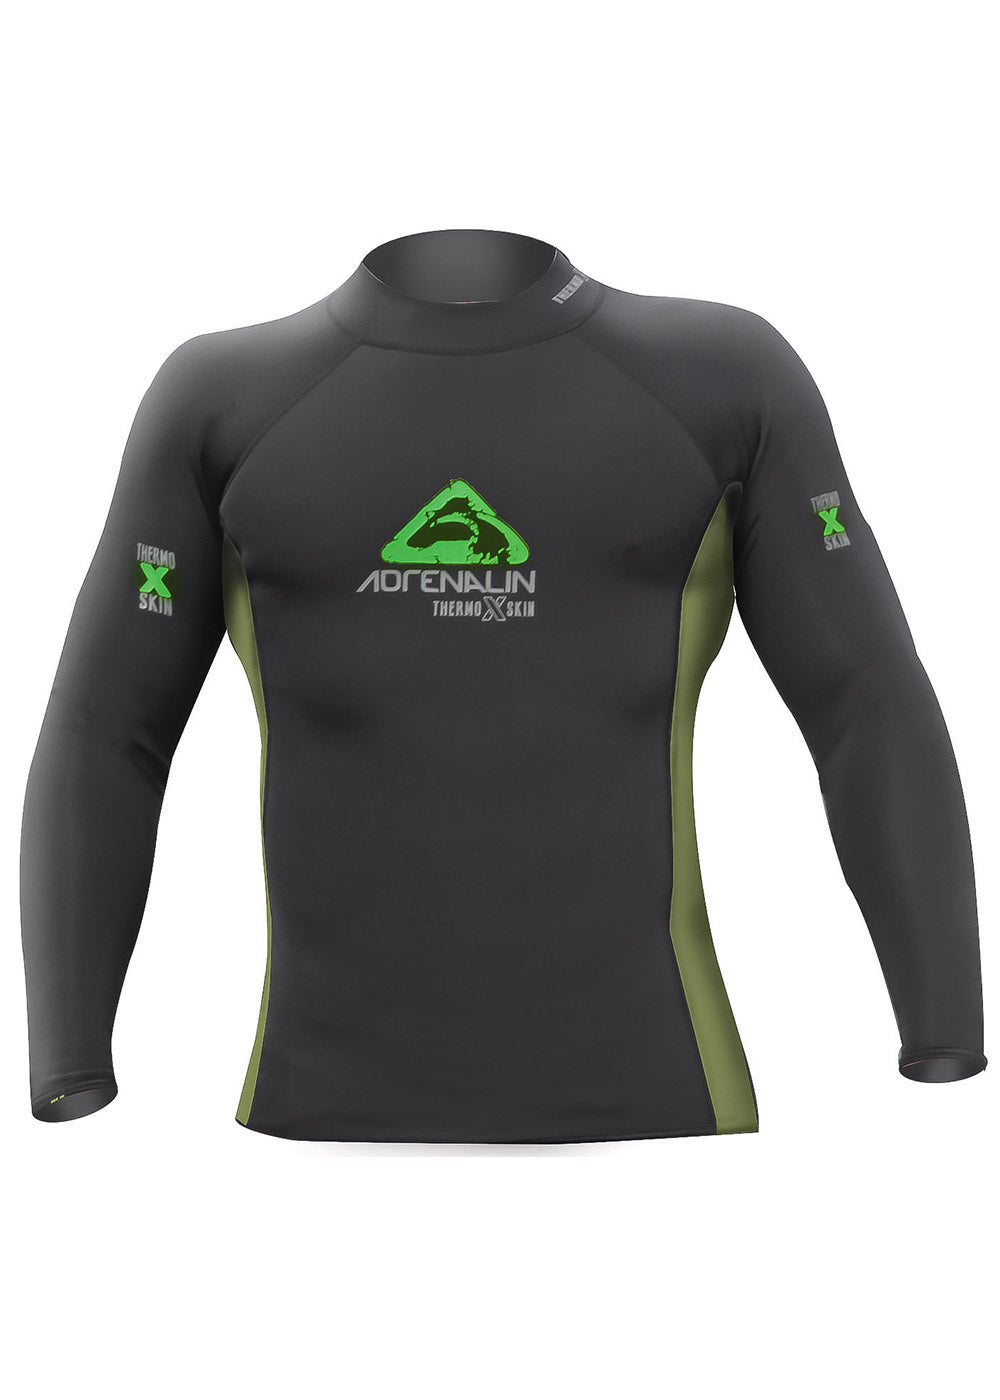 Adrenalin kids 1.5mm Neoprene Hot wetsuit top long sleeve buy online